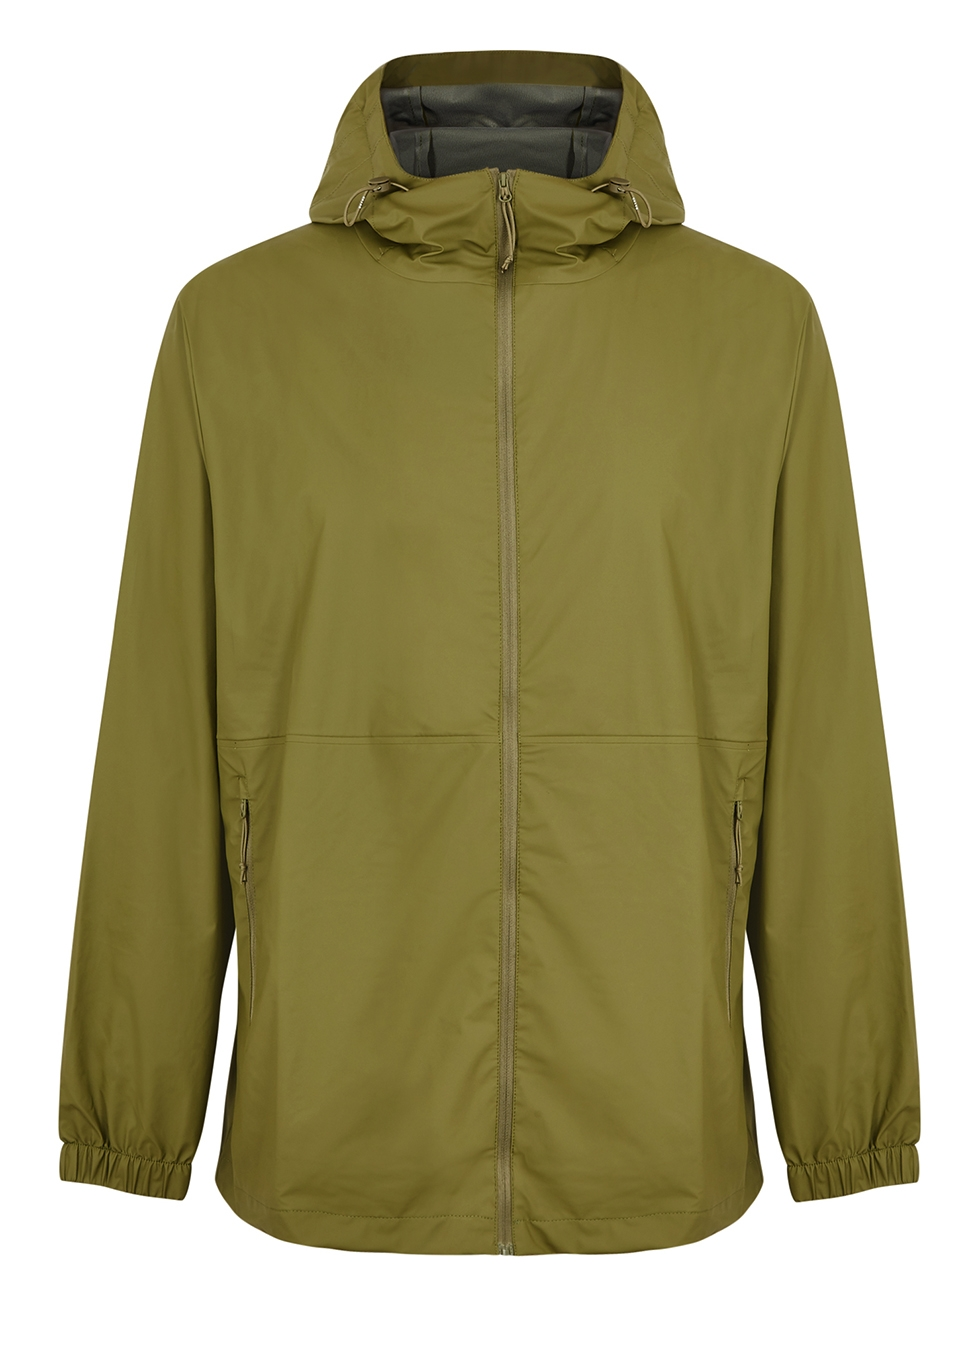 Ultralight green rubberised raincoat